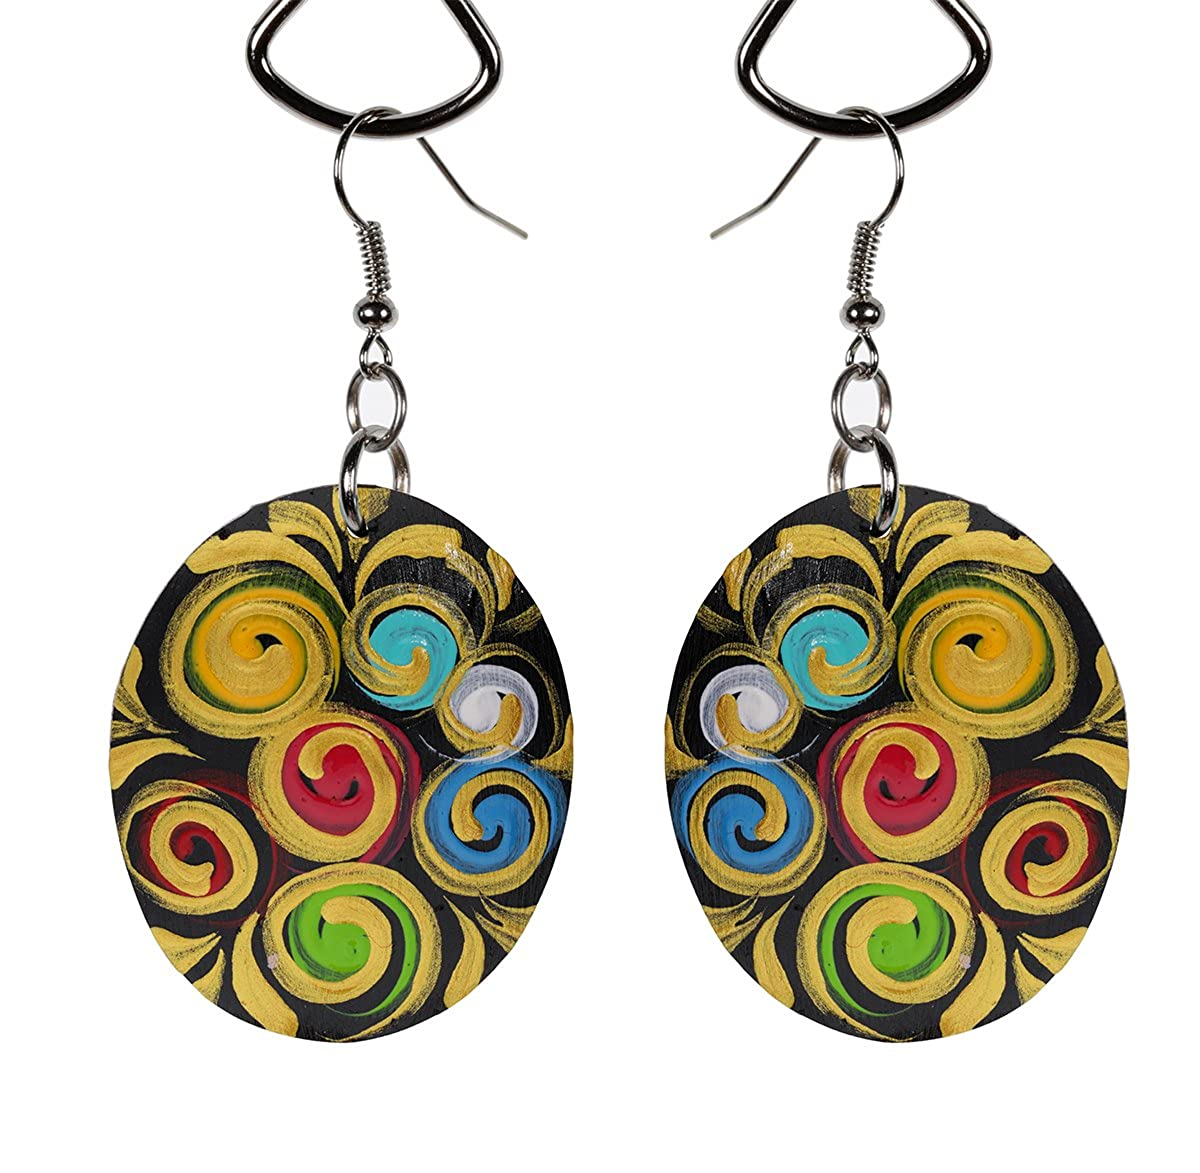 Colorful Spirals Natural Coconut Crafts The Ambient Collection Eco Friendly Oval Handmade Wood Statement Earrings For Moms